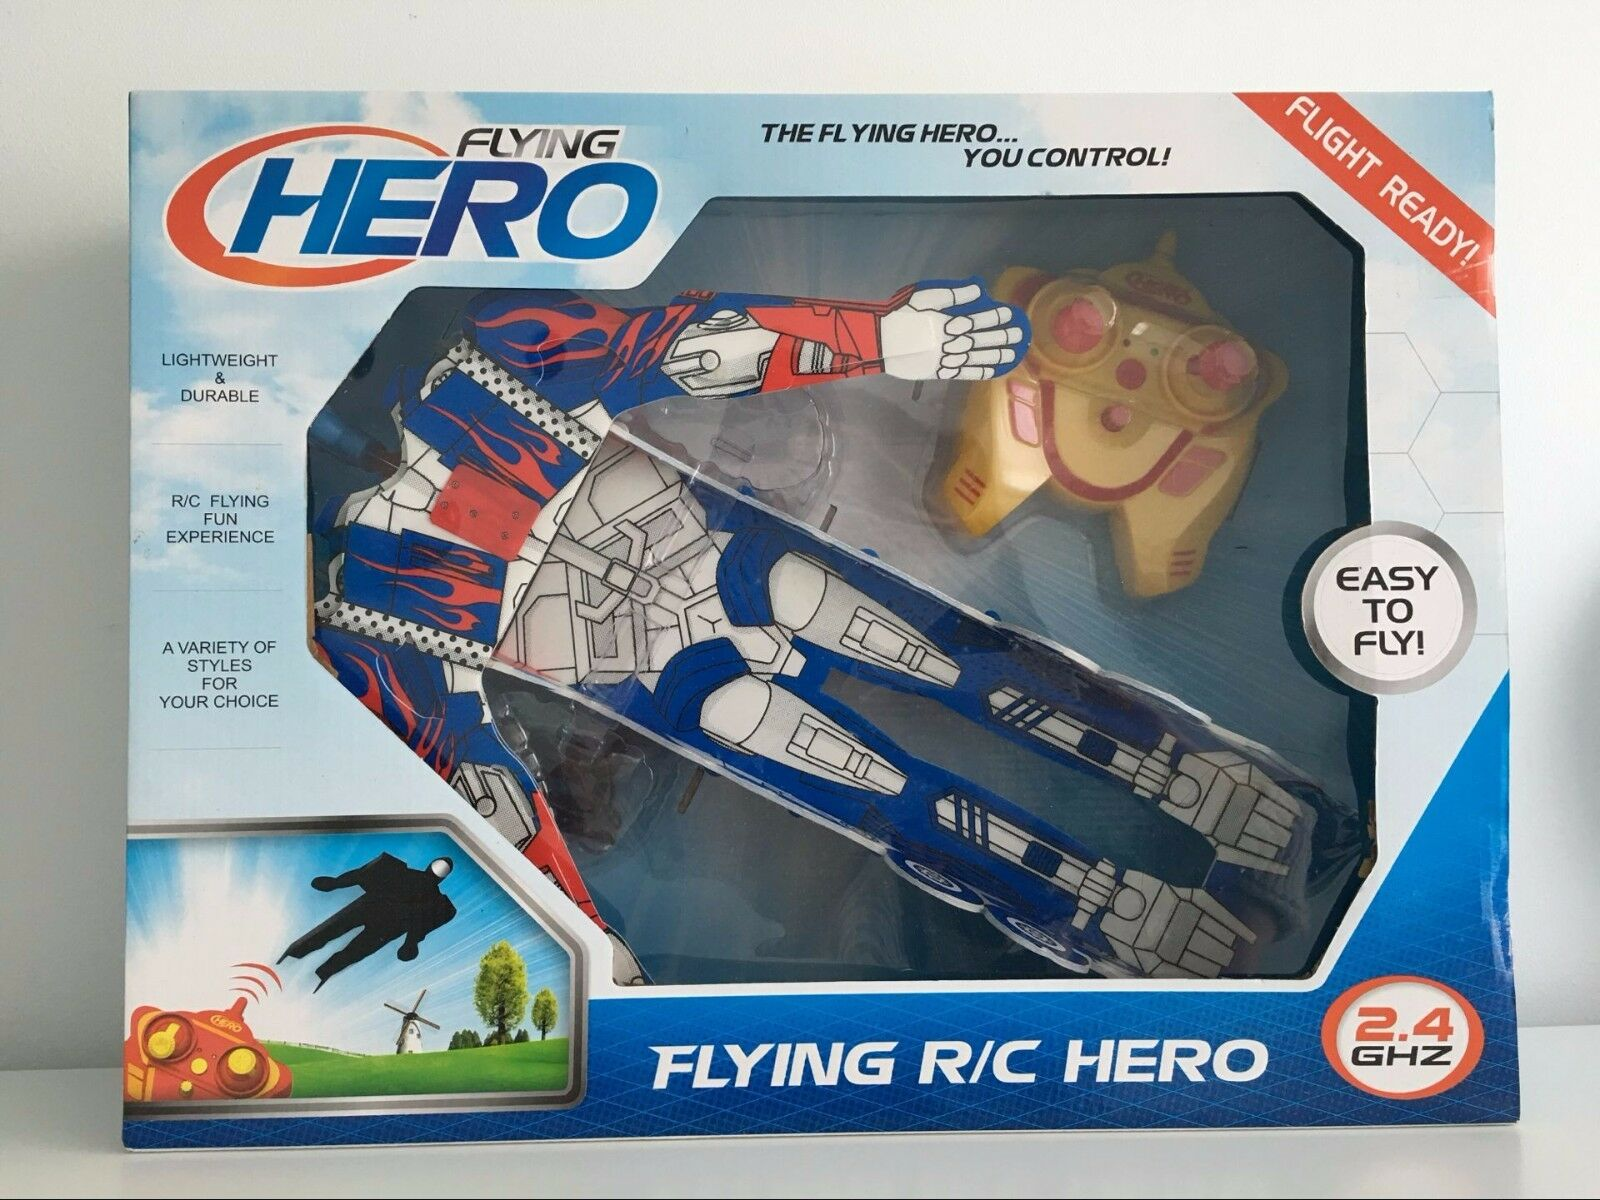 Flying R/C Hero 2.4GHZ 2 Channels Radio Control Lightweight&Durable Outdoor Toy